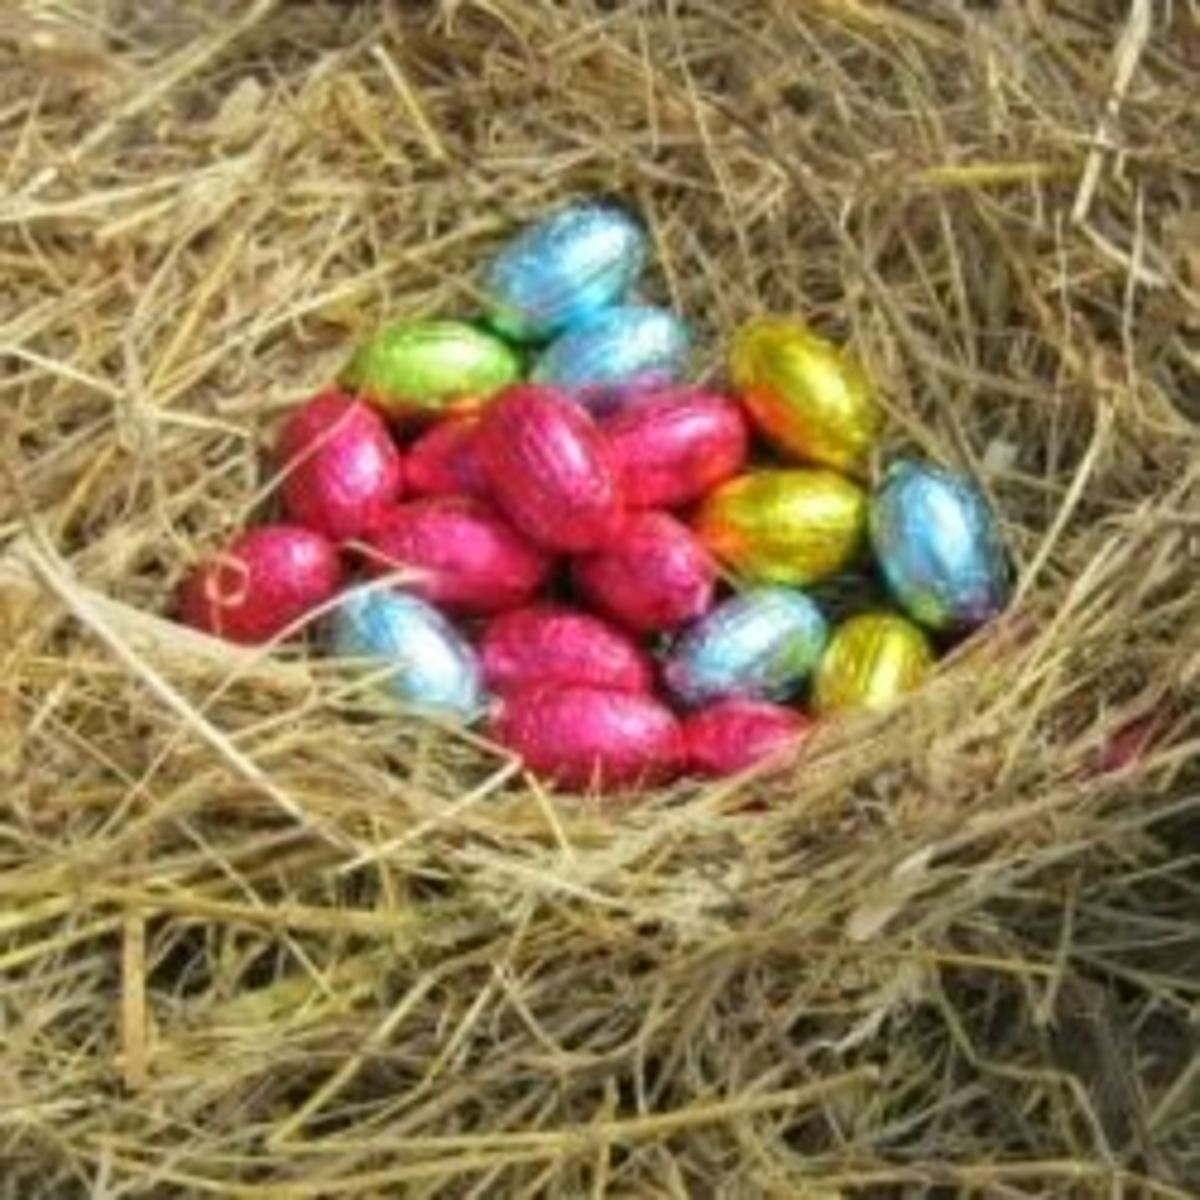 The Easter Egg Hunt